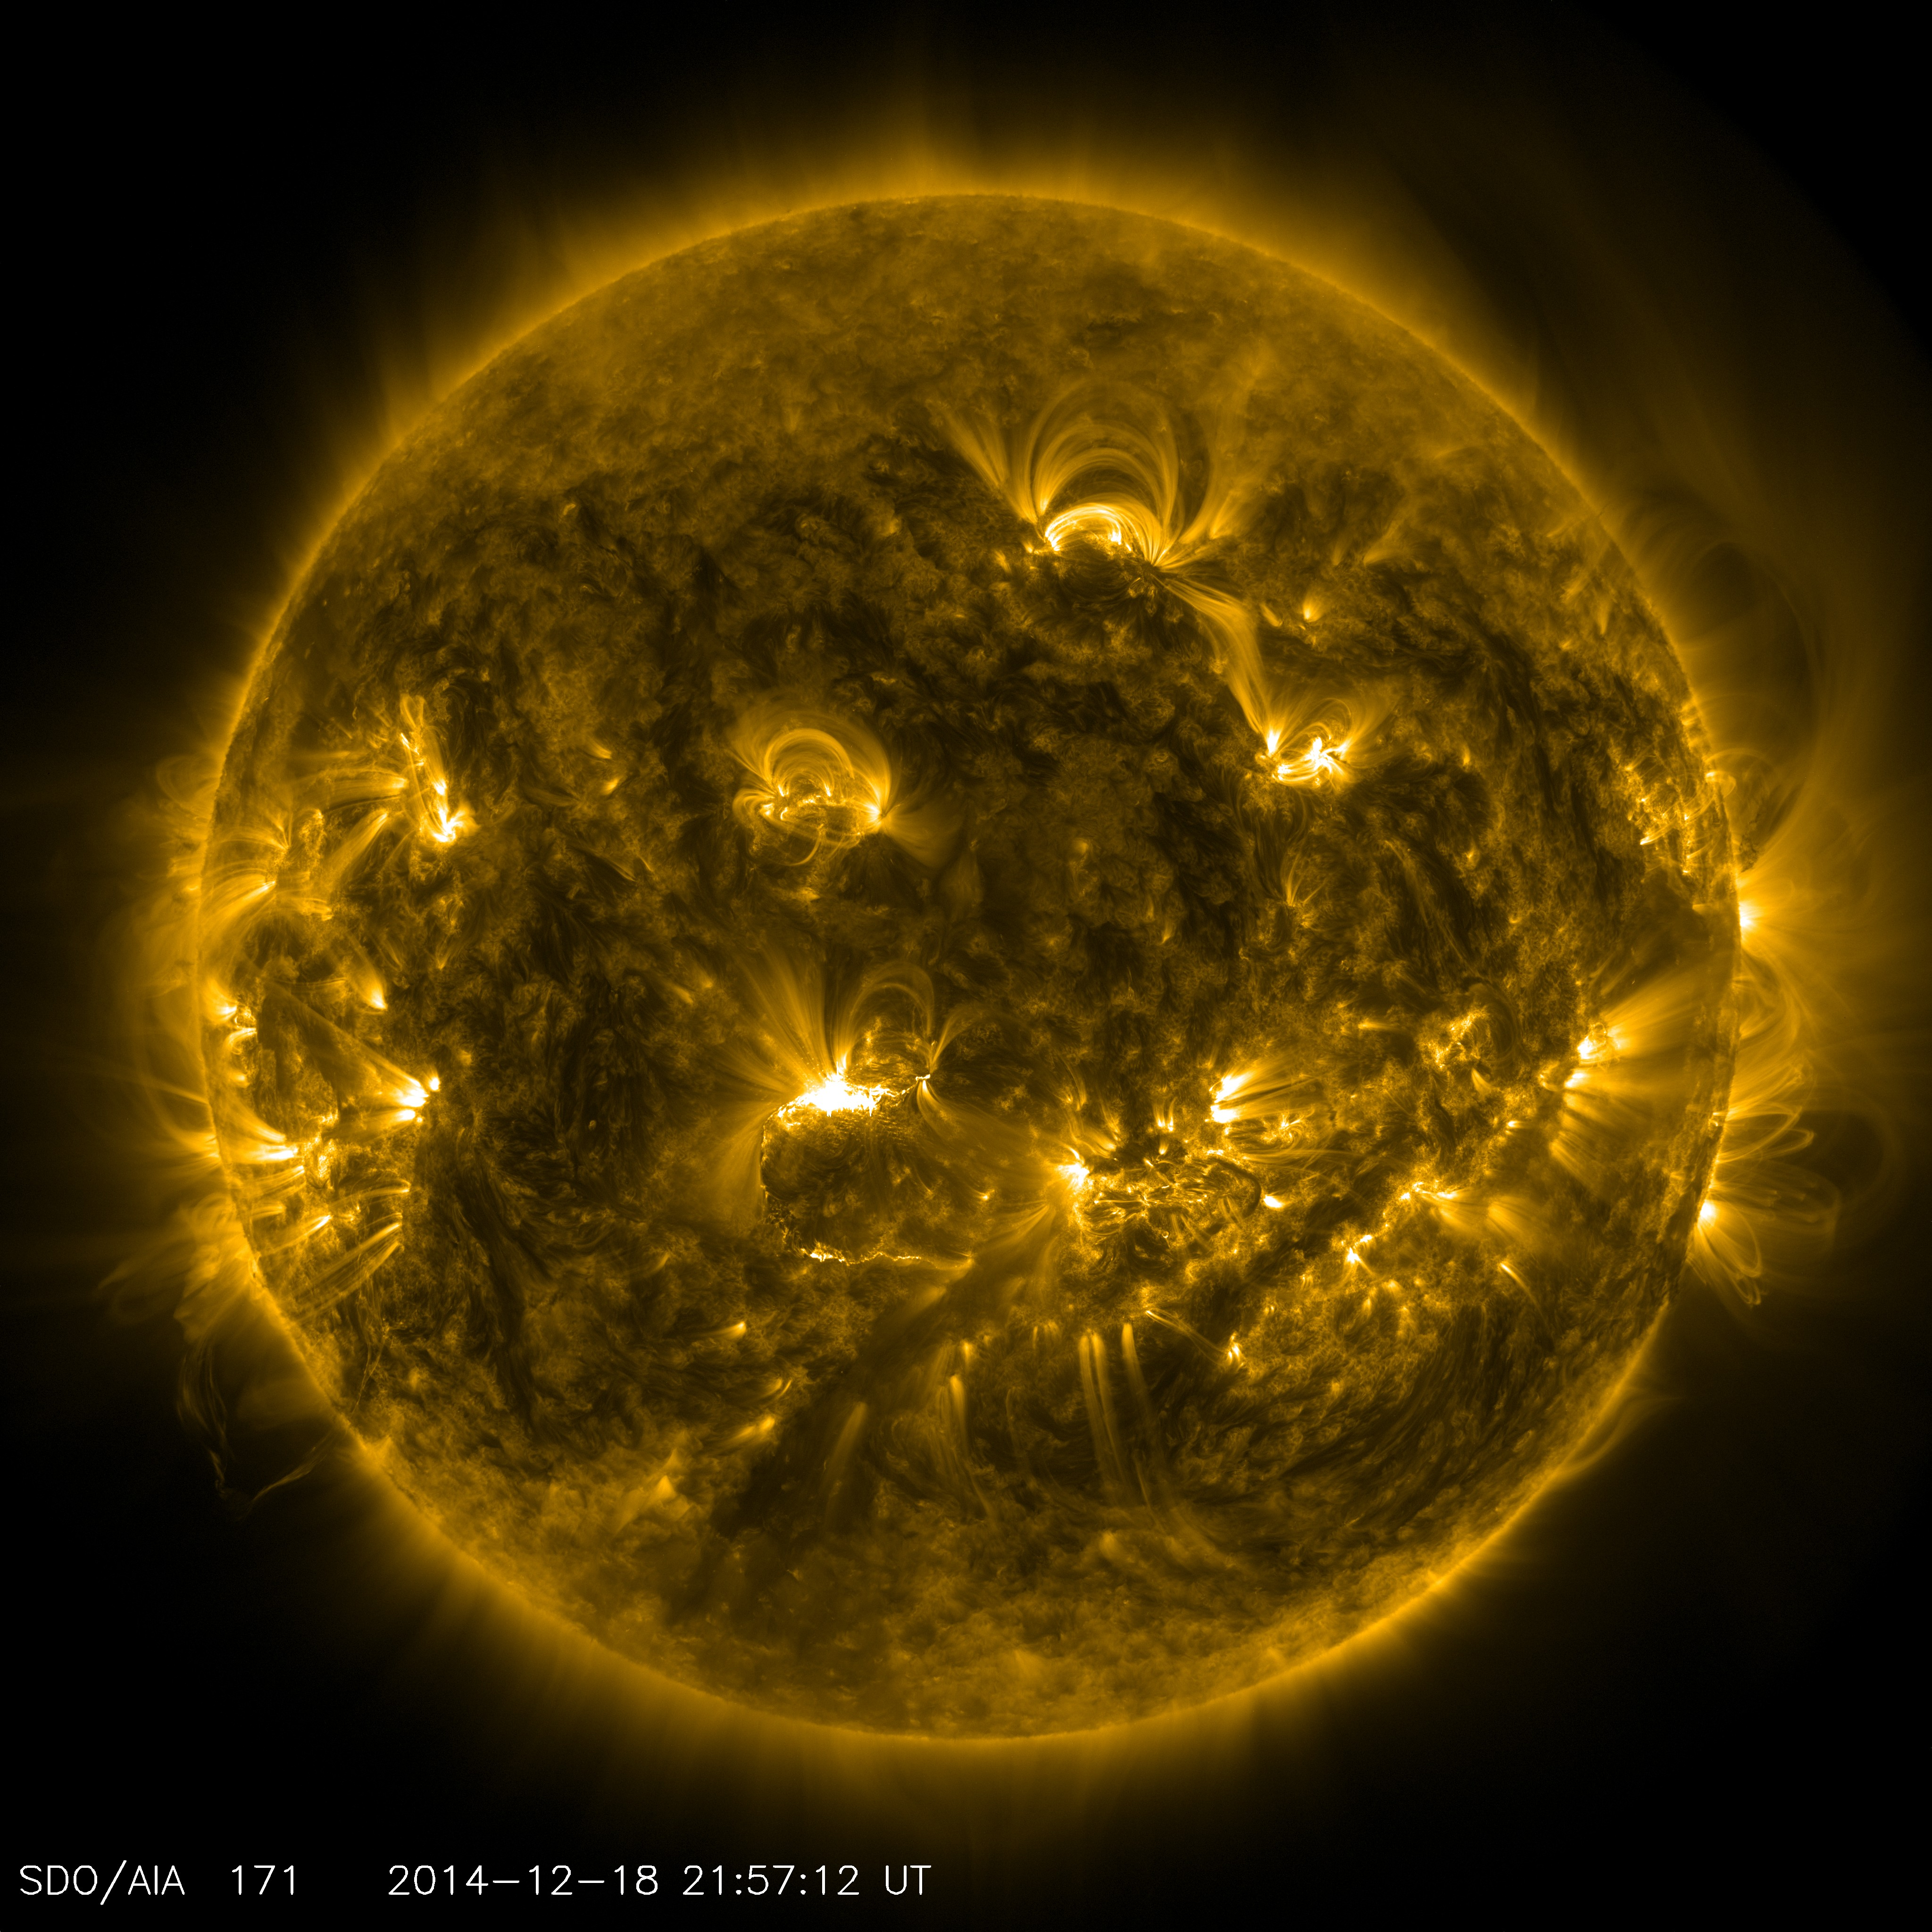 how to download sdo 2016